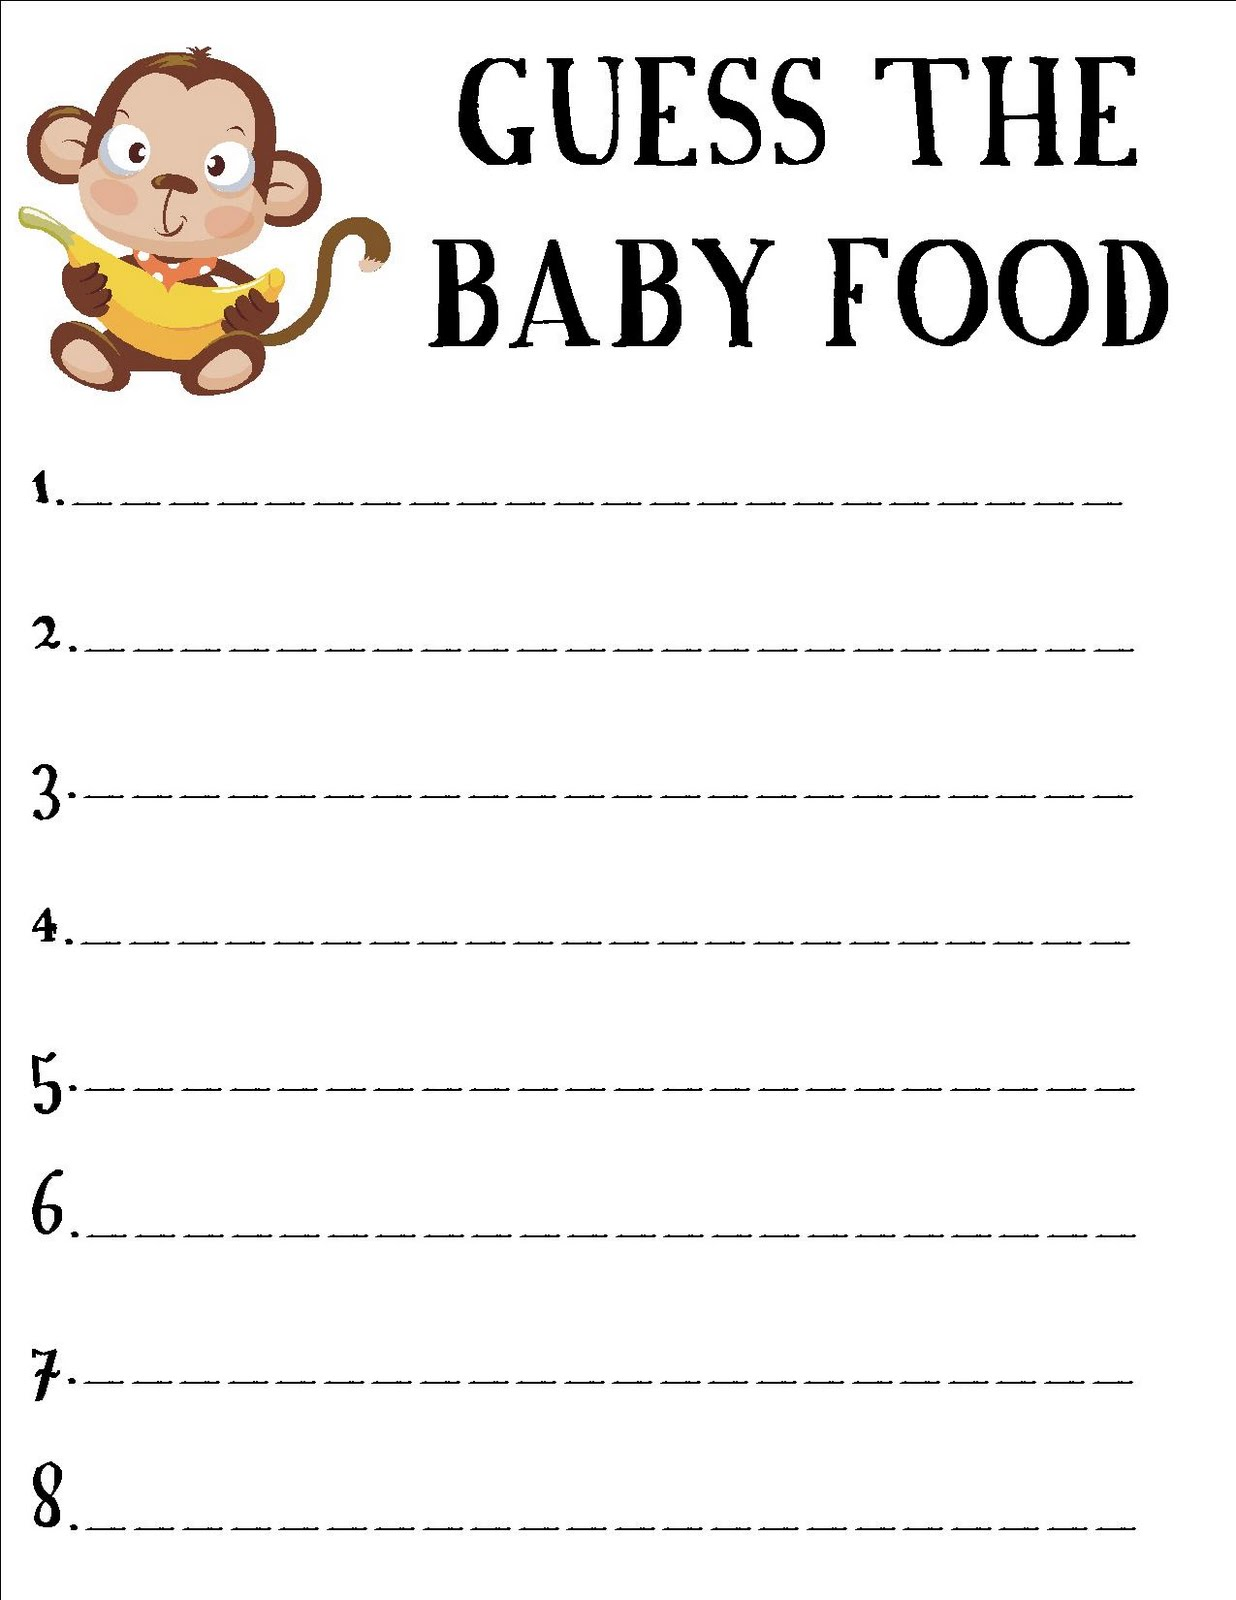 Baby Food Guessing Game Free Printable